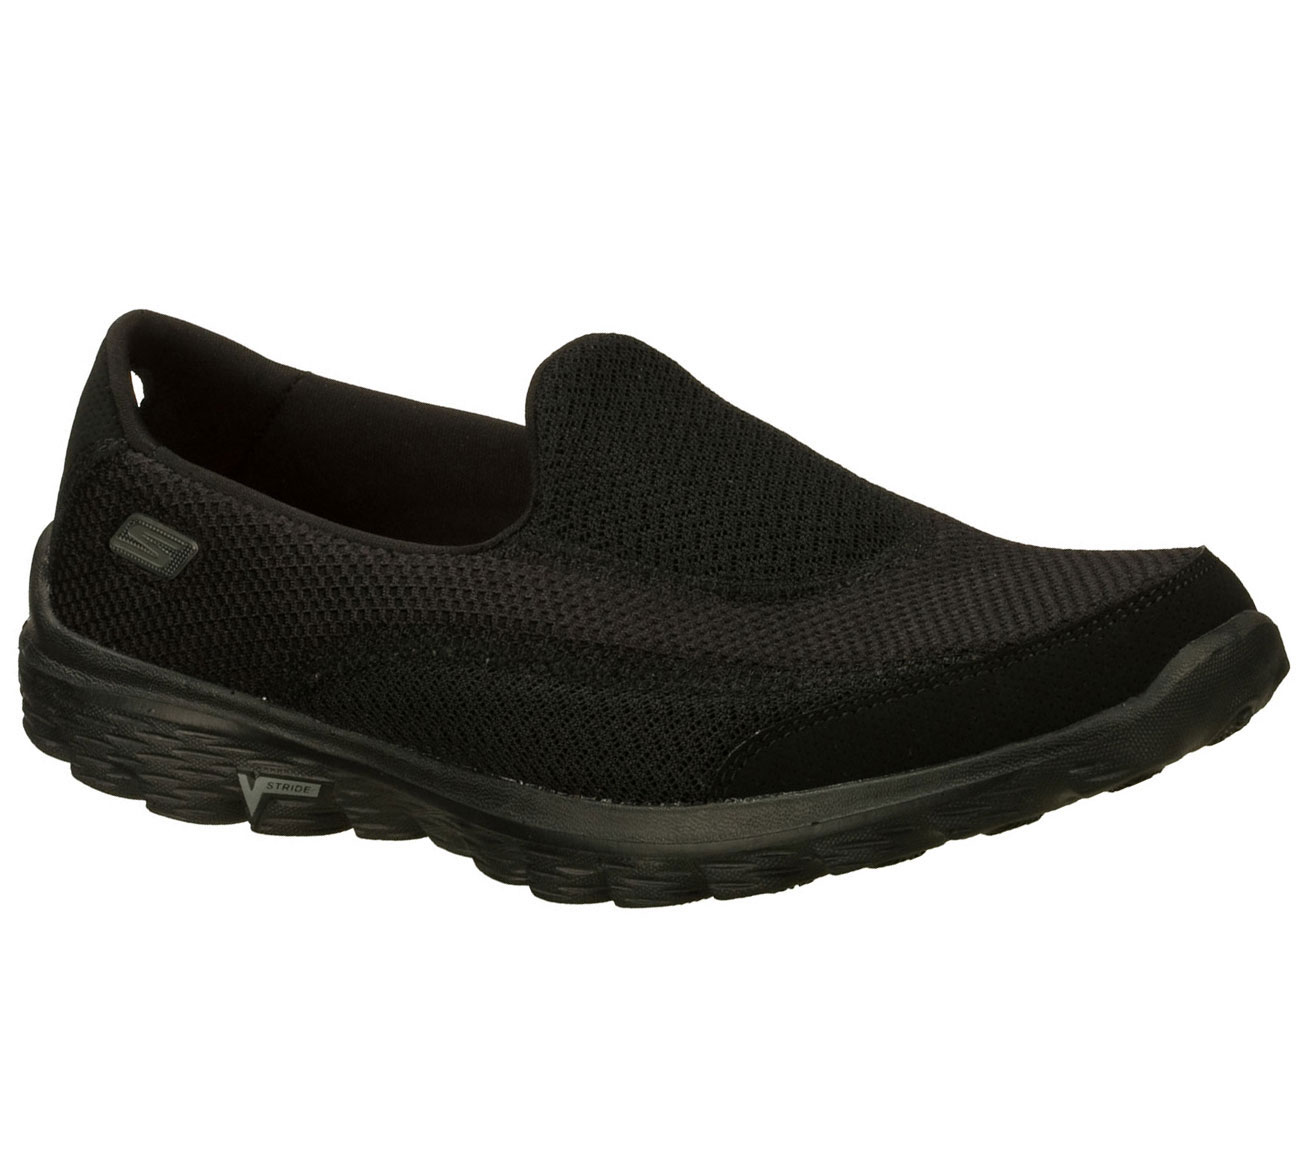 f0c5df23a14 skechers walking shoes for ladies sale   OFF55% Discounted